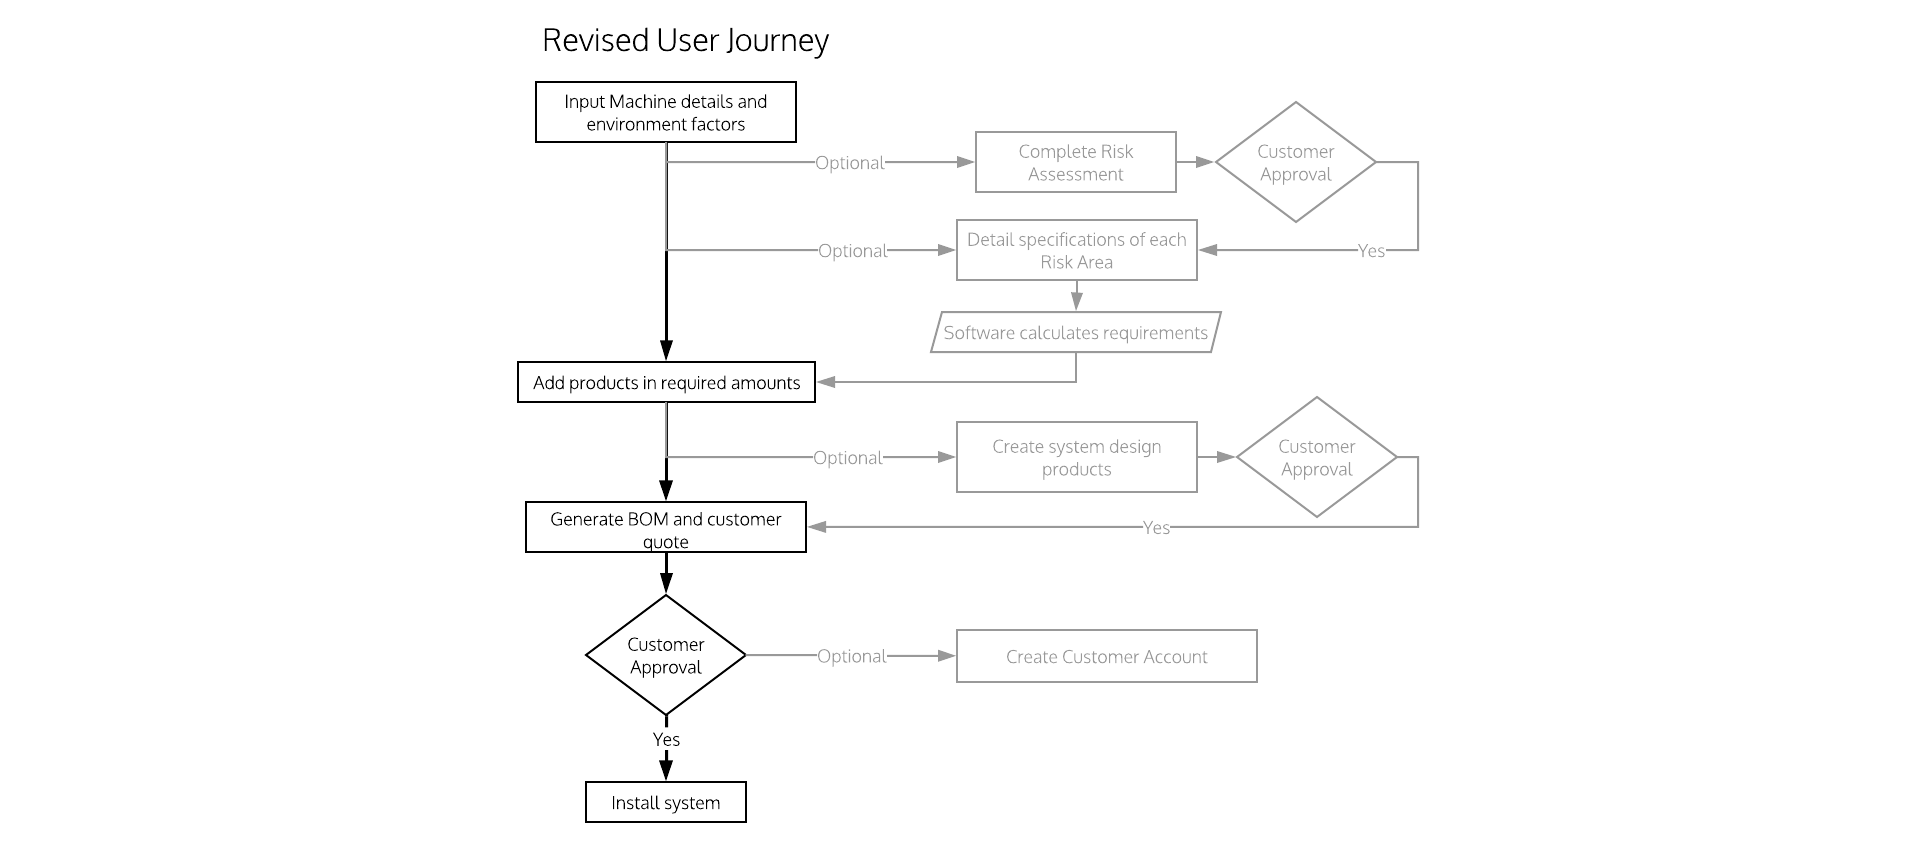 Diagram of original User Journey which took a shorter path through the system and allowed user to bypass steps to generate a quick quote, then return later to make the machine compliment with Australian standards